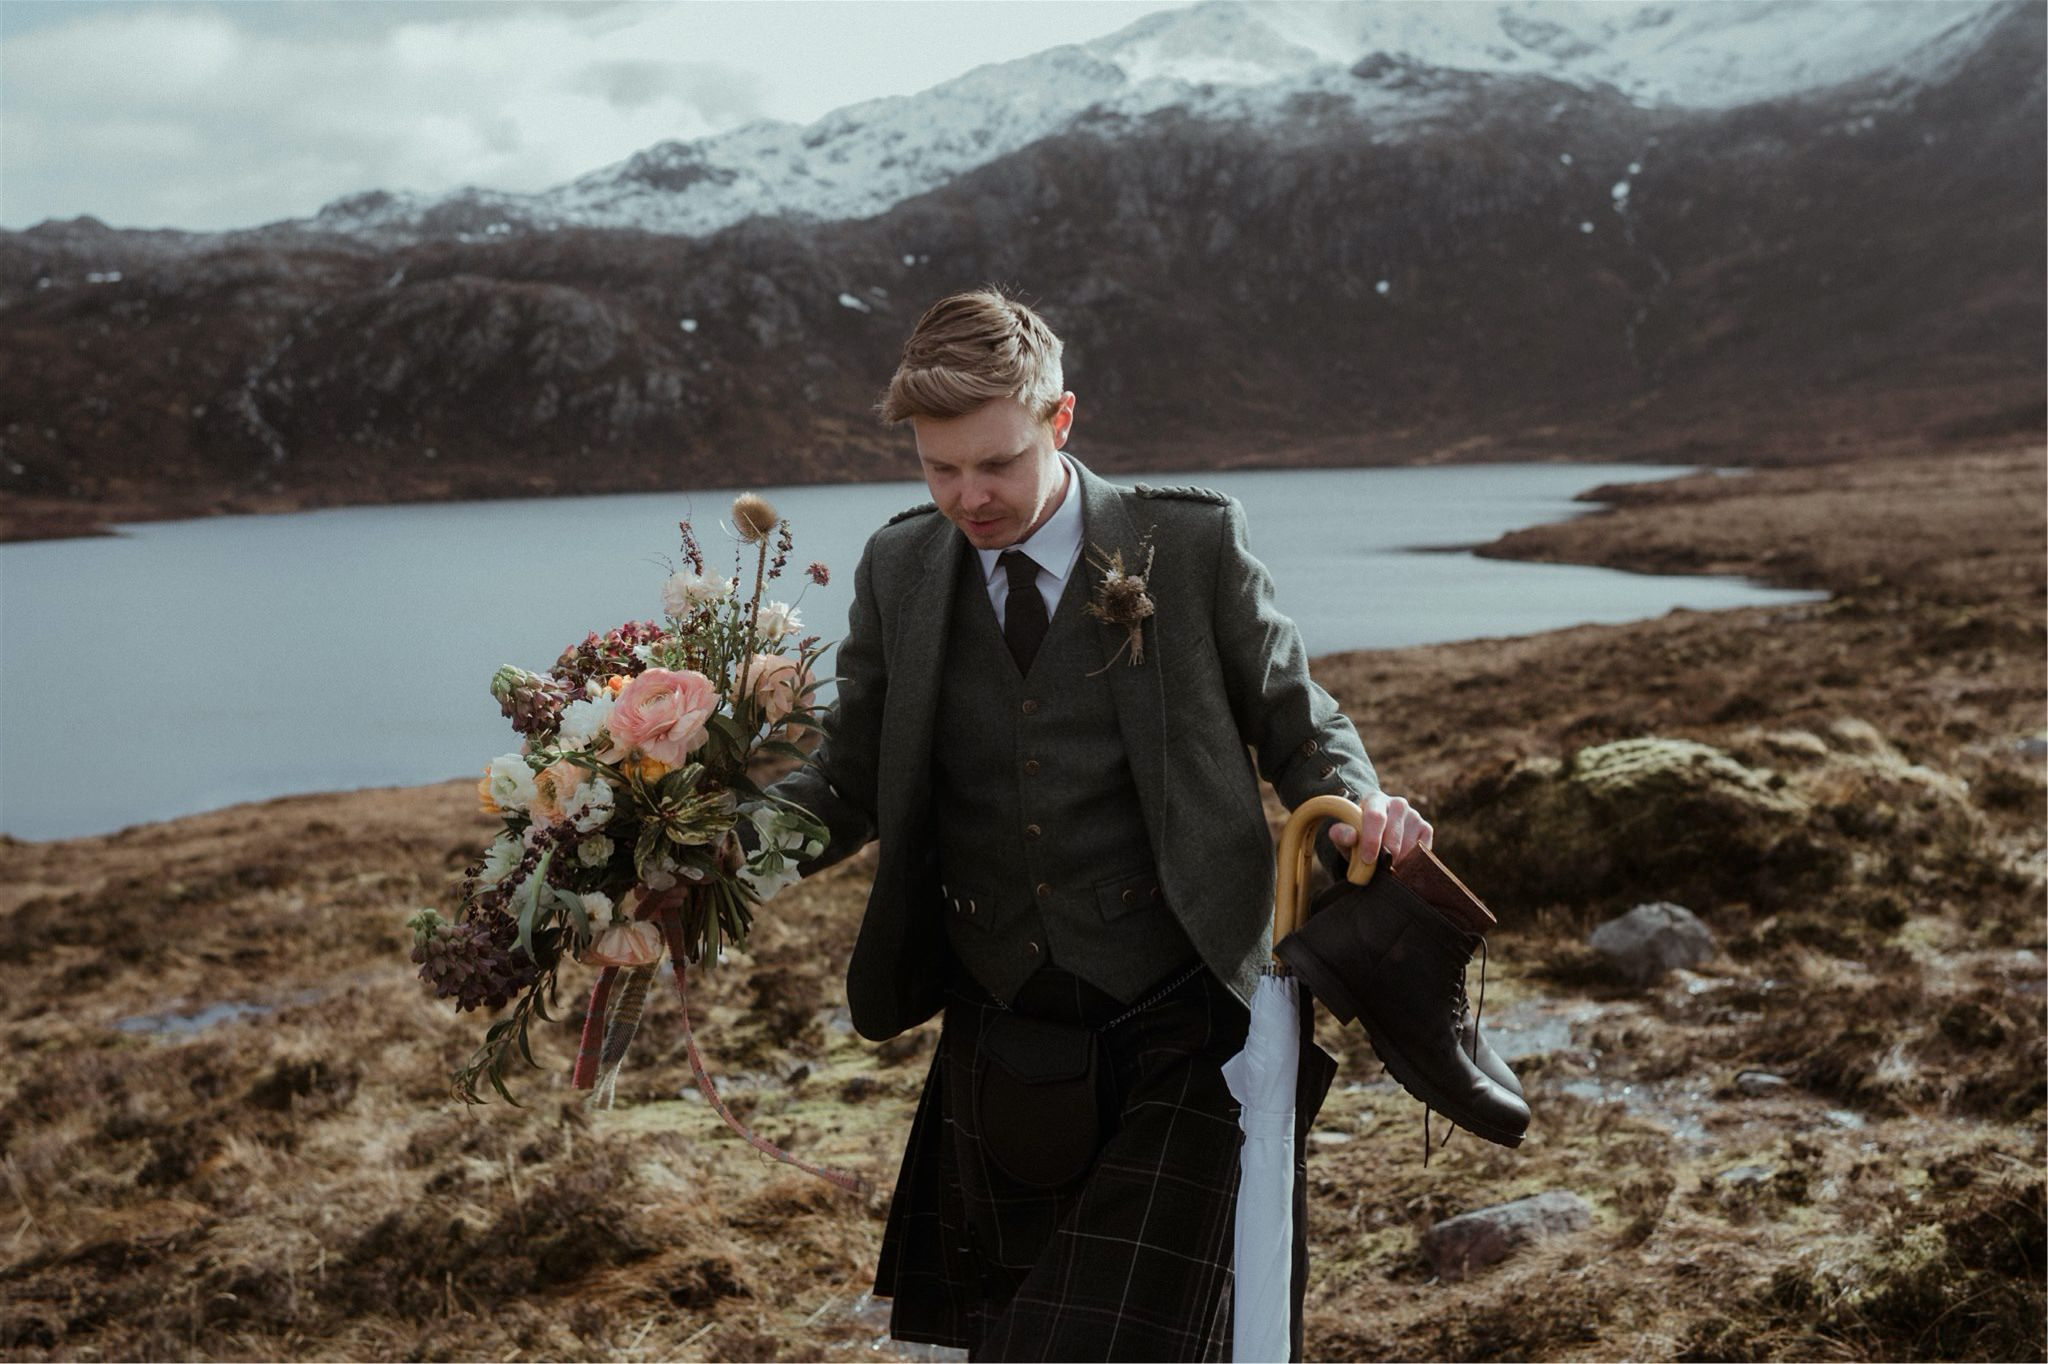 Groom carrying flowers, boots and umbrellas at an elopement in Assynt, Scotland